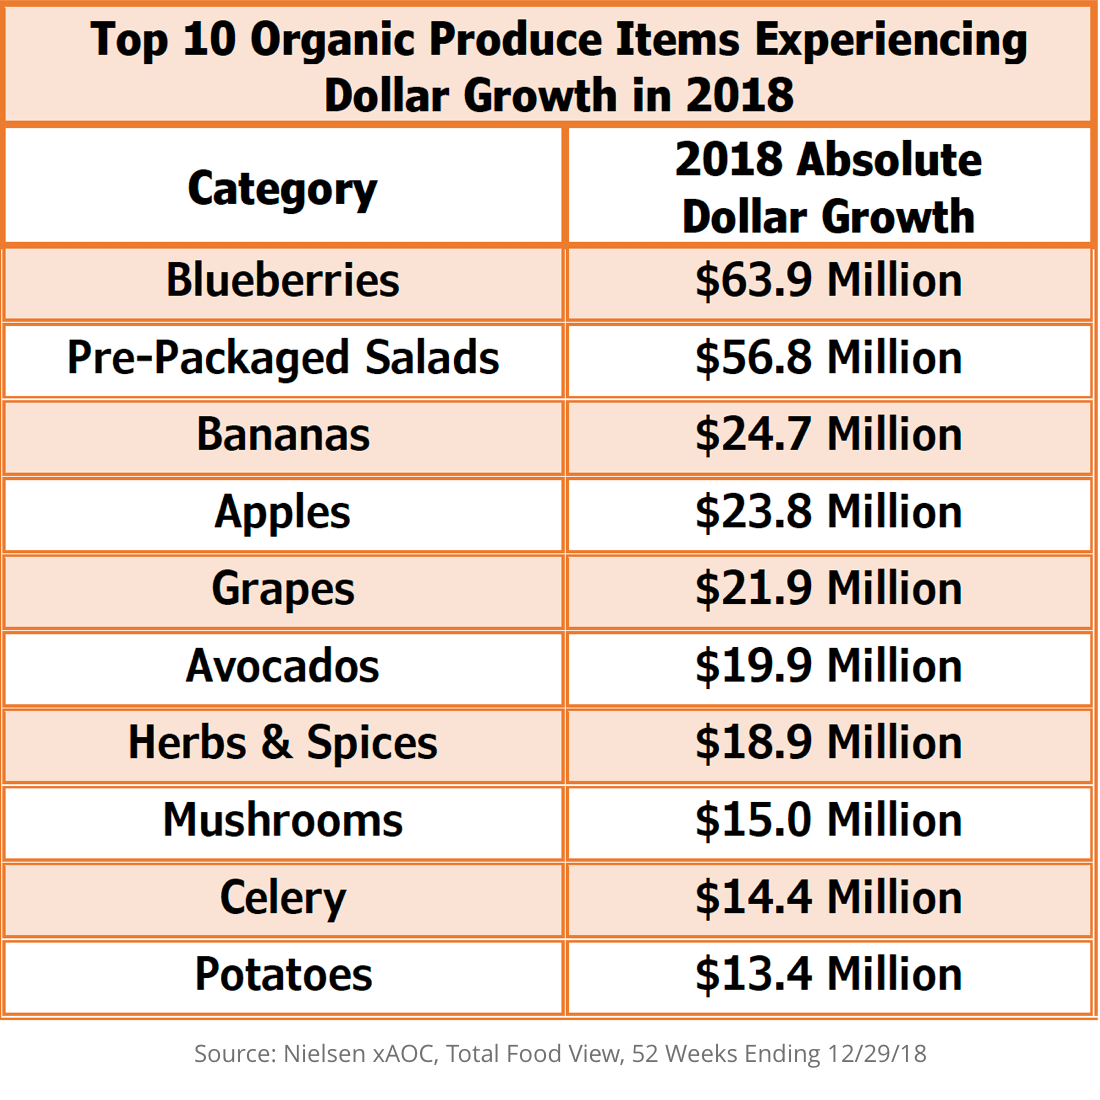 Top 10 Organic Produce Items Experiencing Dollar Growth in 2018